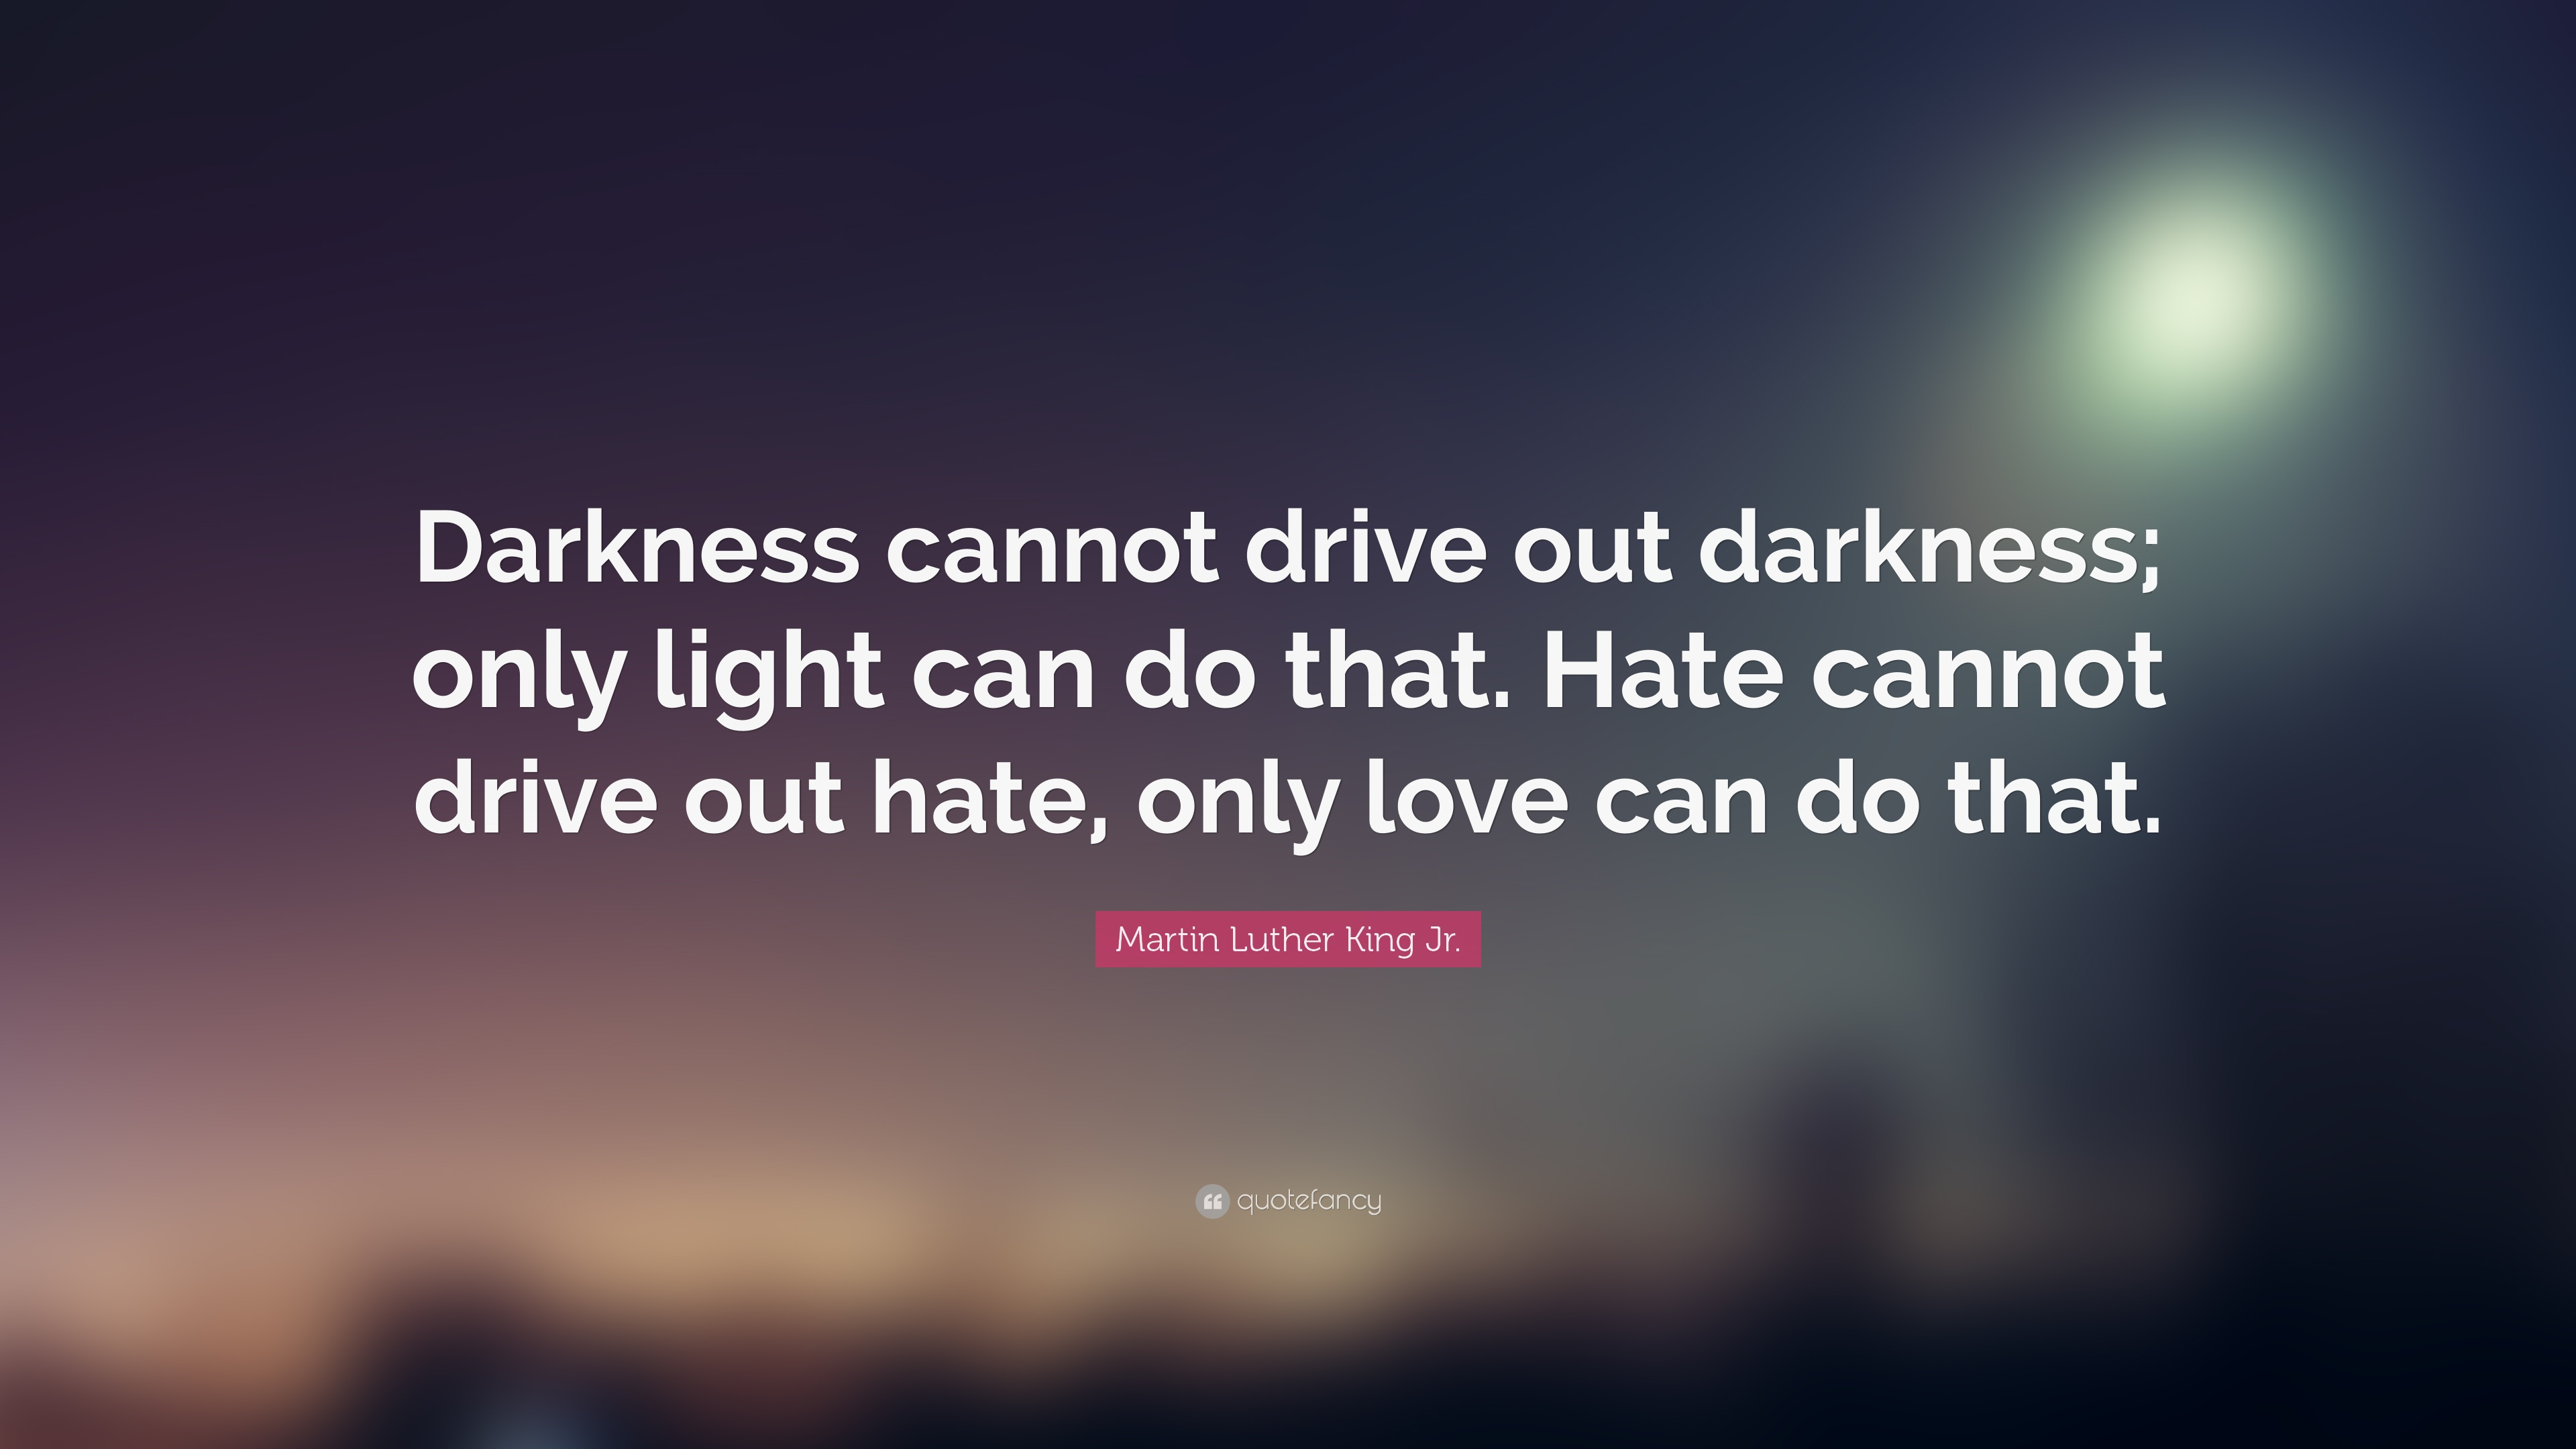 Martin Luther King Jr Quote Darkness Cannot Drive Out Darkness